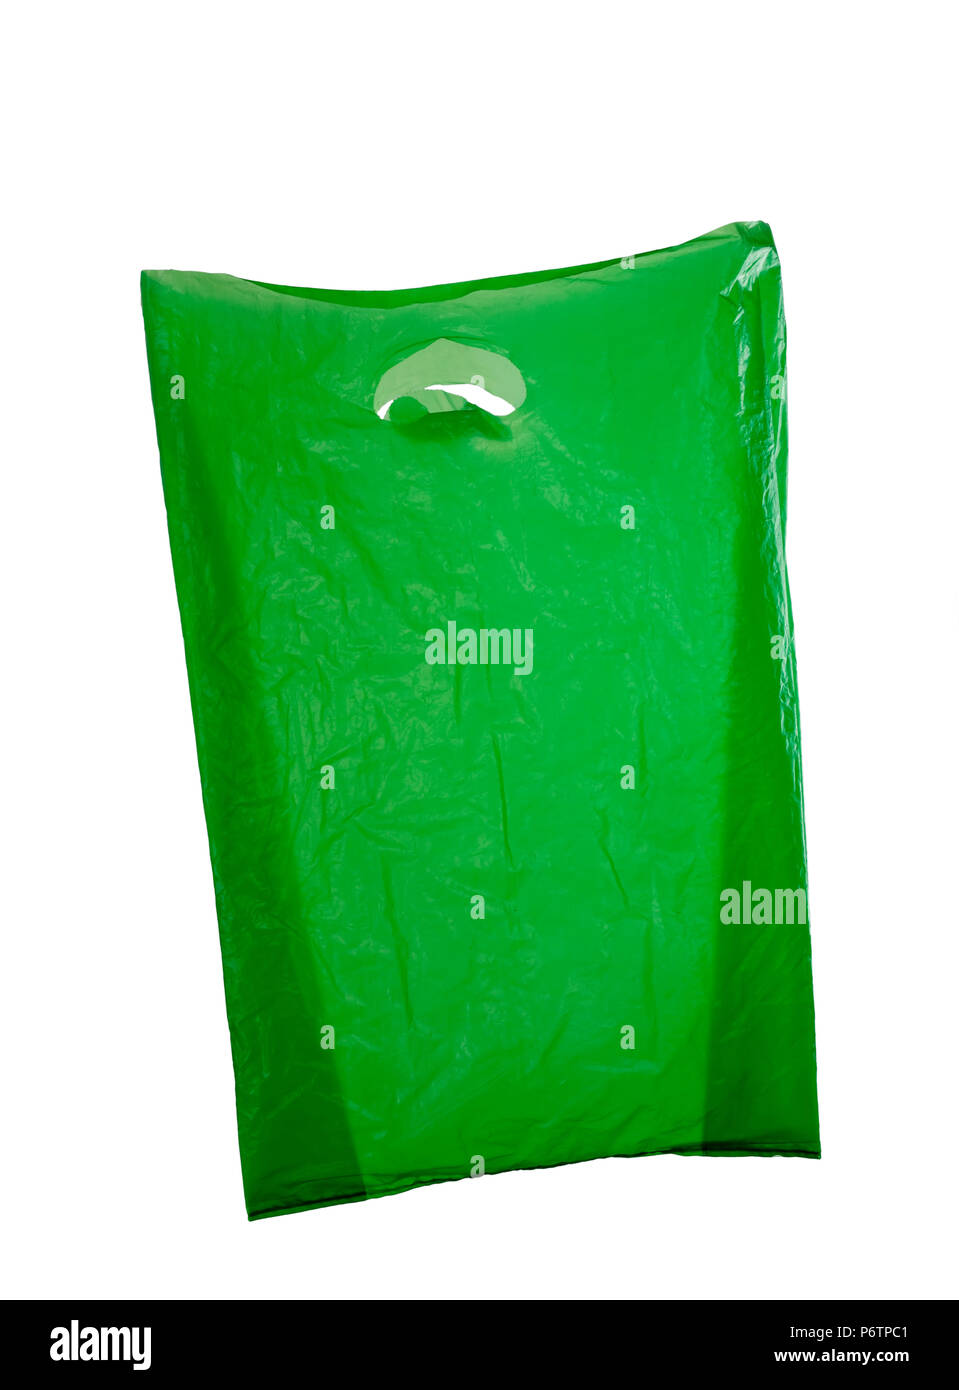 Used and reused green plastic bag isolated on white background - Stock Image